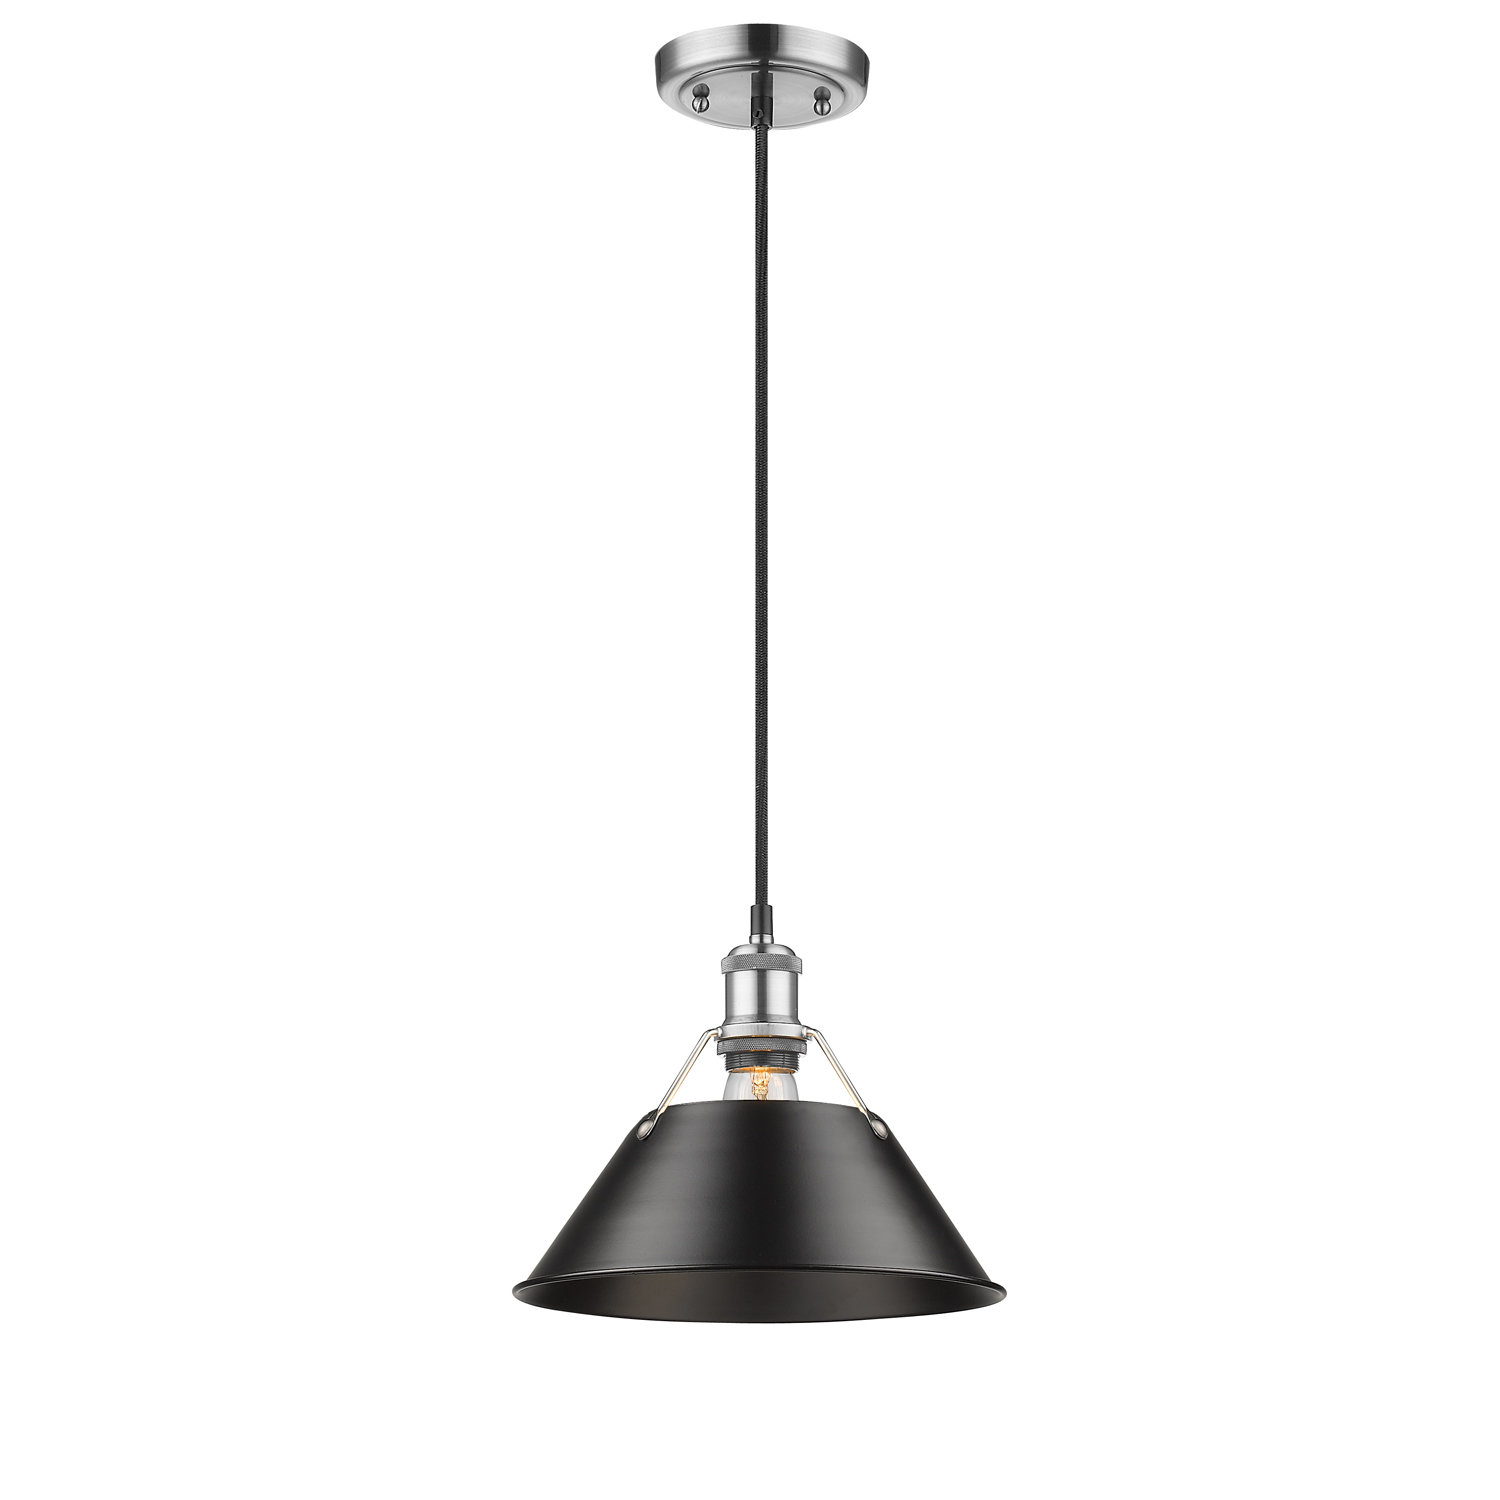 Weatherford 1 Light Single Cone Pendant With Regard To Nadeau 1 Light Single Cone Pendants (View 15 of 30)